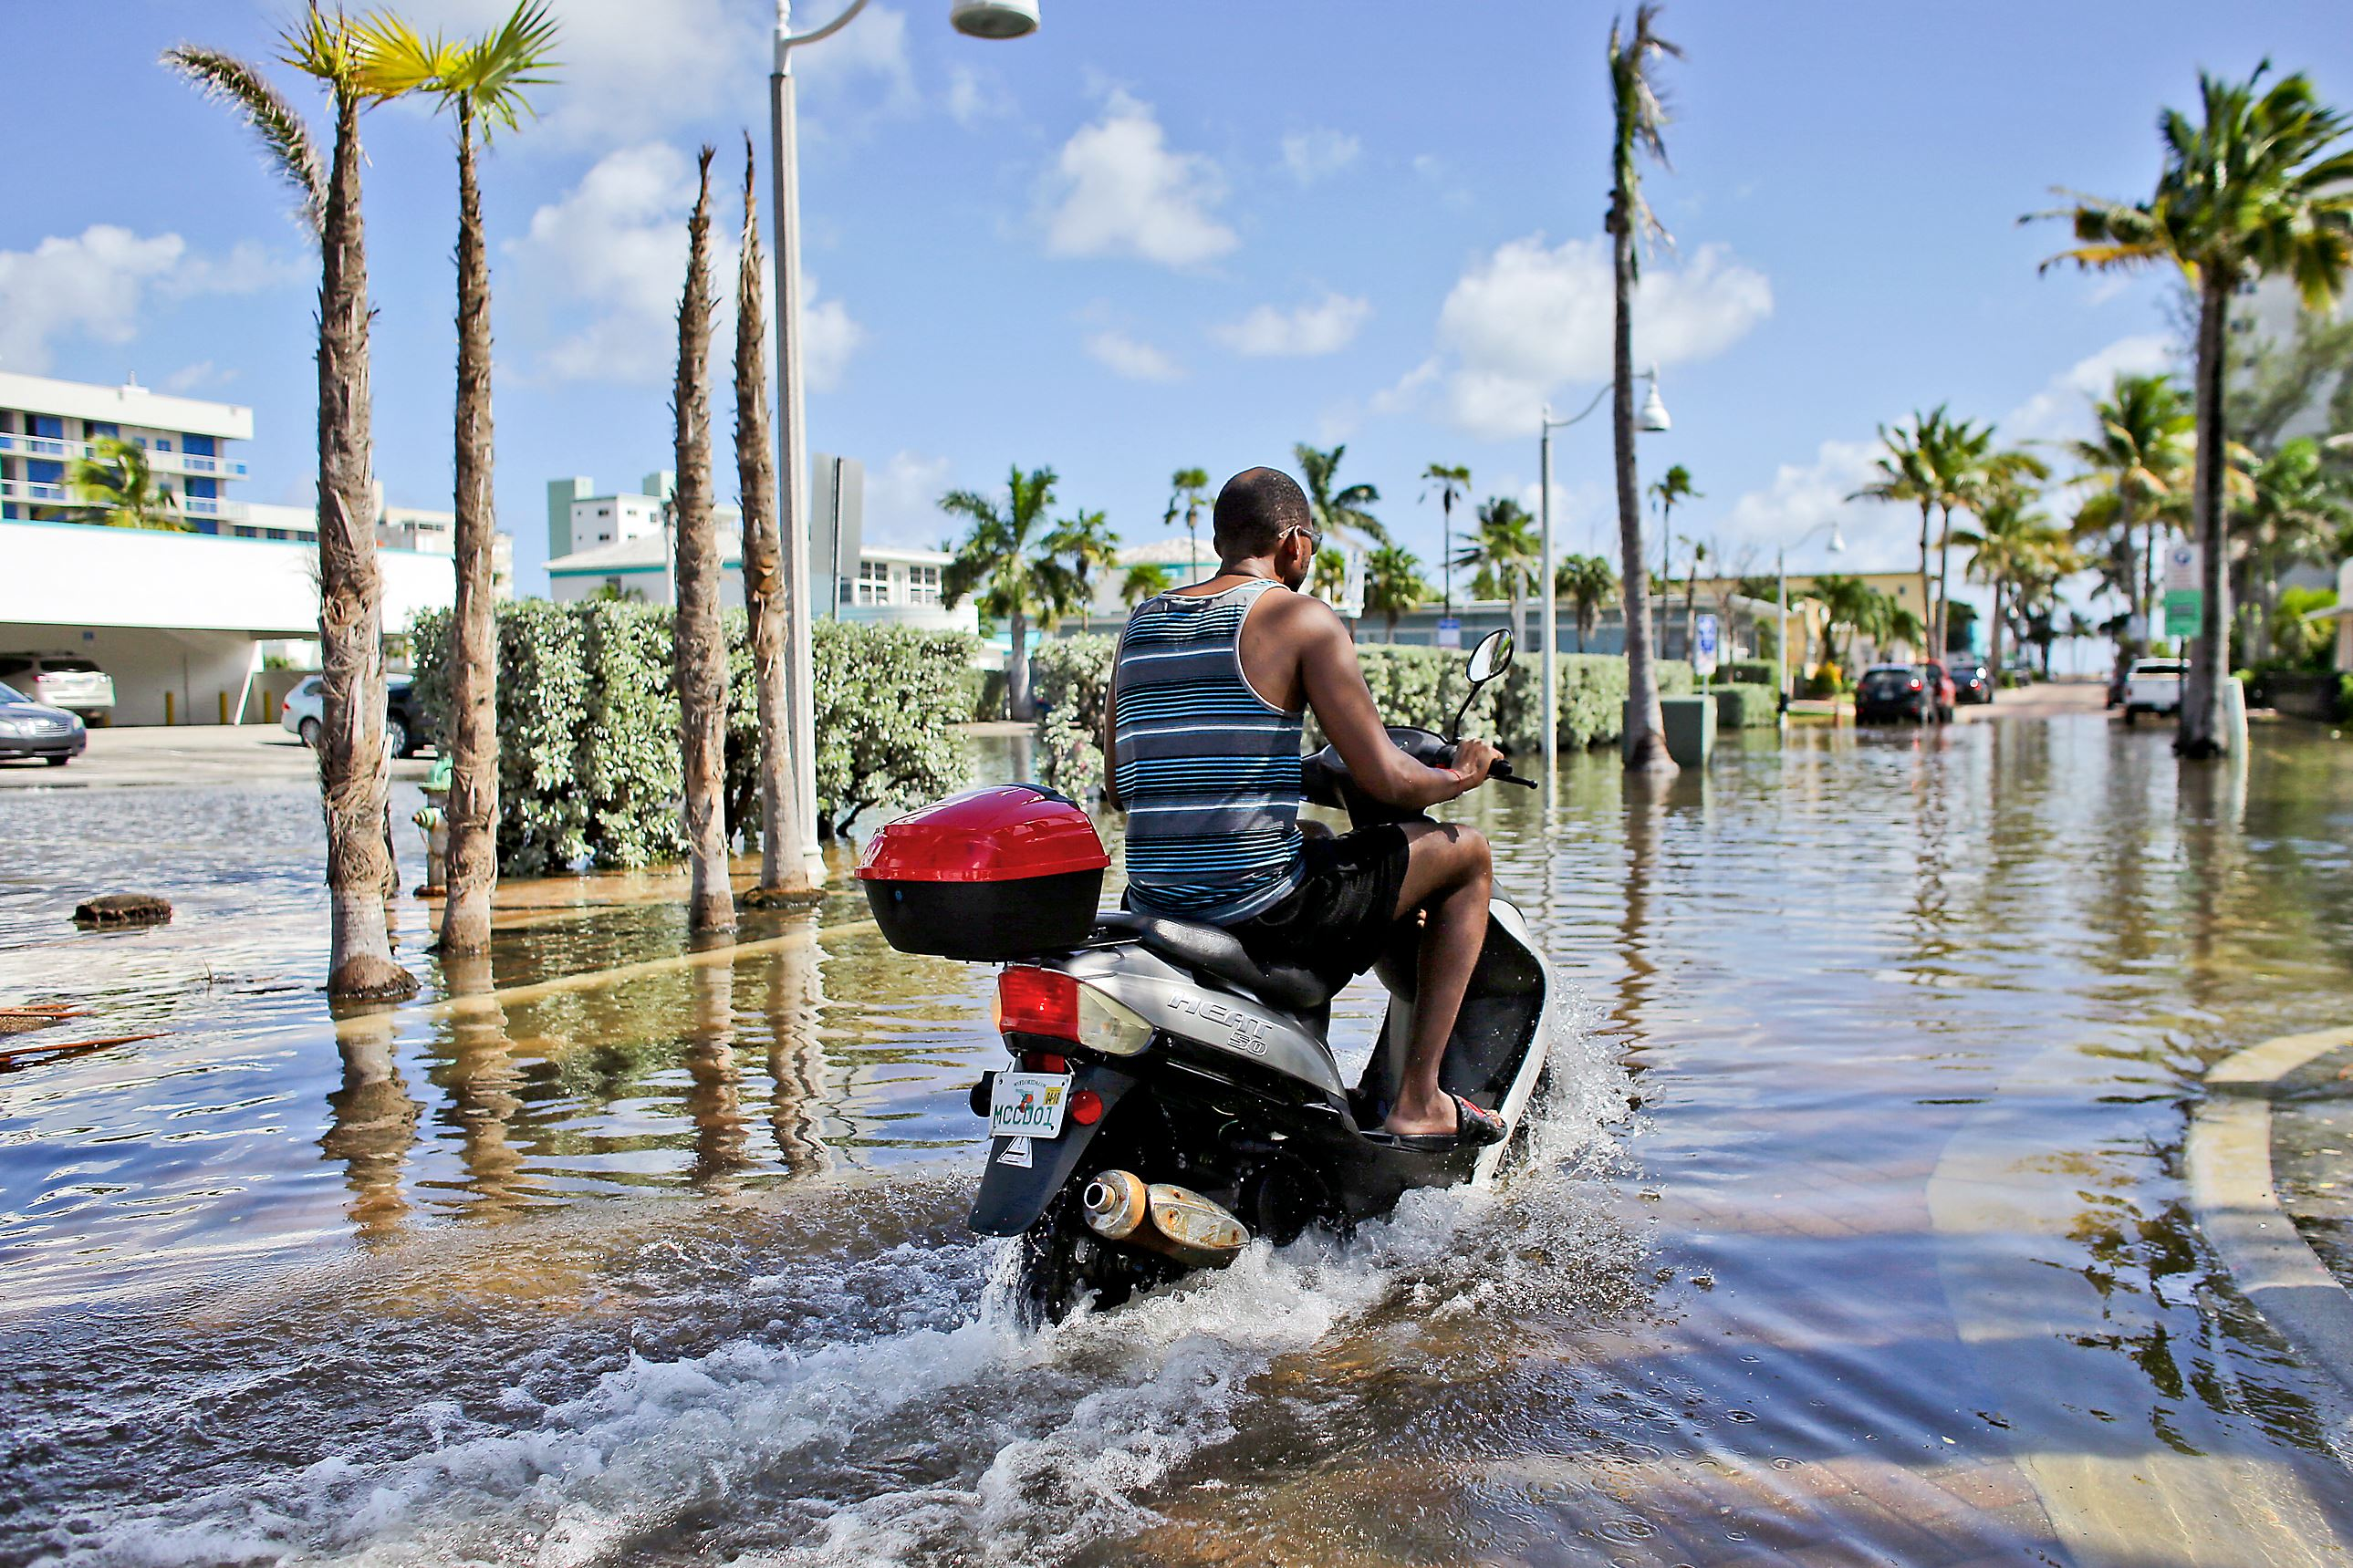 Florida-King-Tide-JPEG-4786-1 A motorbike navigates through floodwater caused by a seasonal king tide in Hollywood, Fla. this past fall.